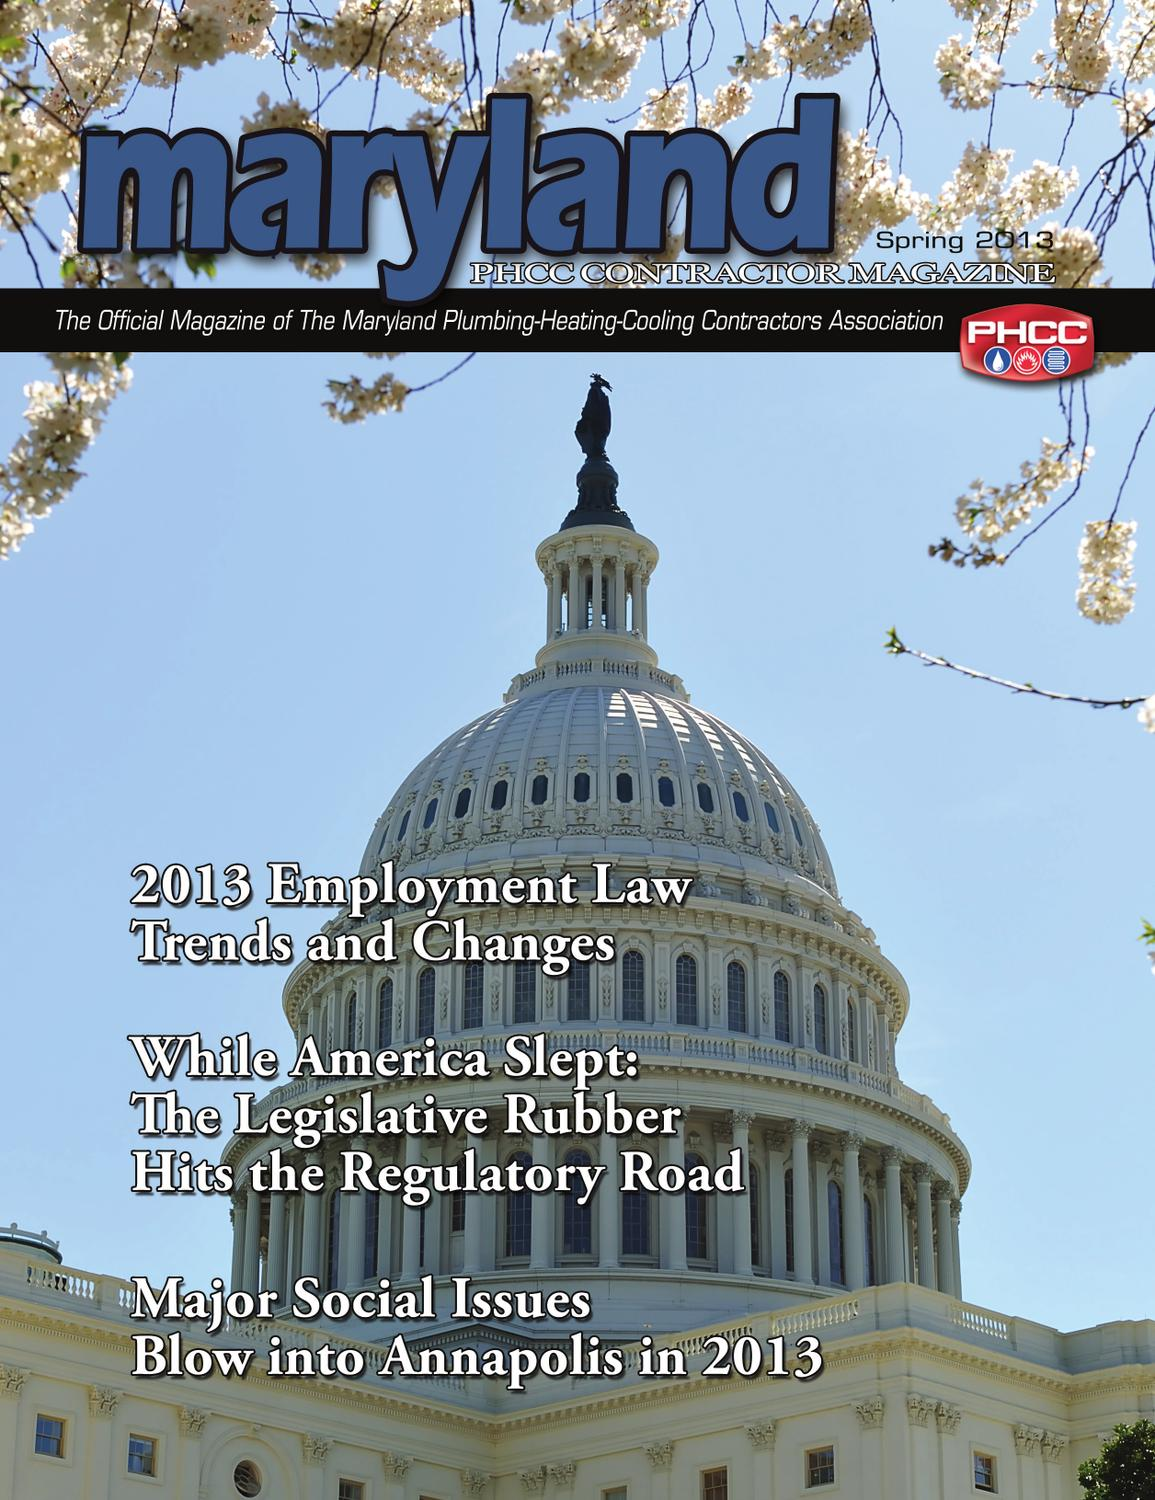 maryland phcc magazine spring 2013 by kris mccurry issuu. Black Bedroom Furniture Sets. Home Design Ideas